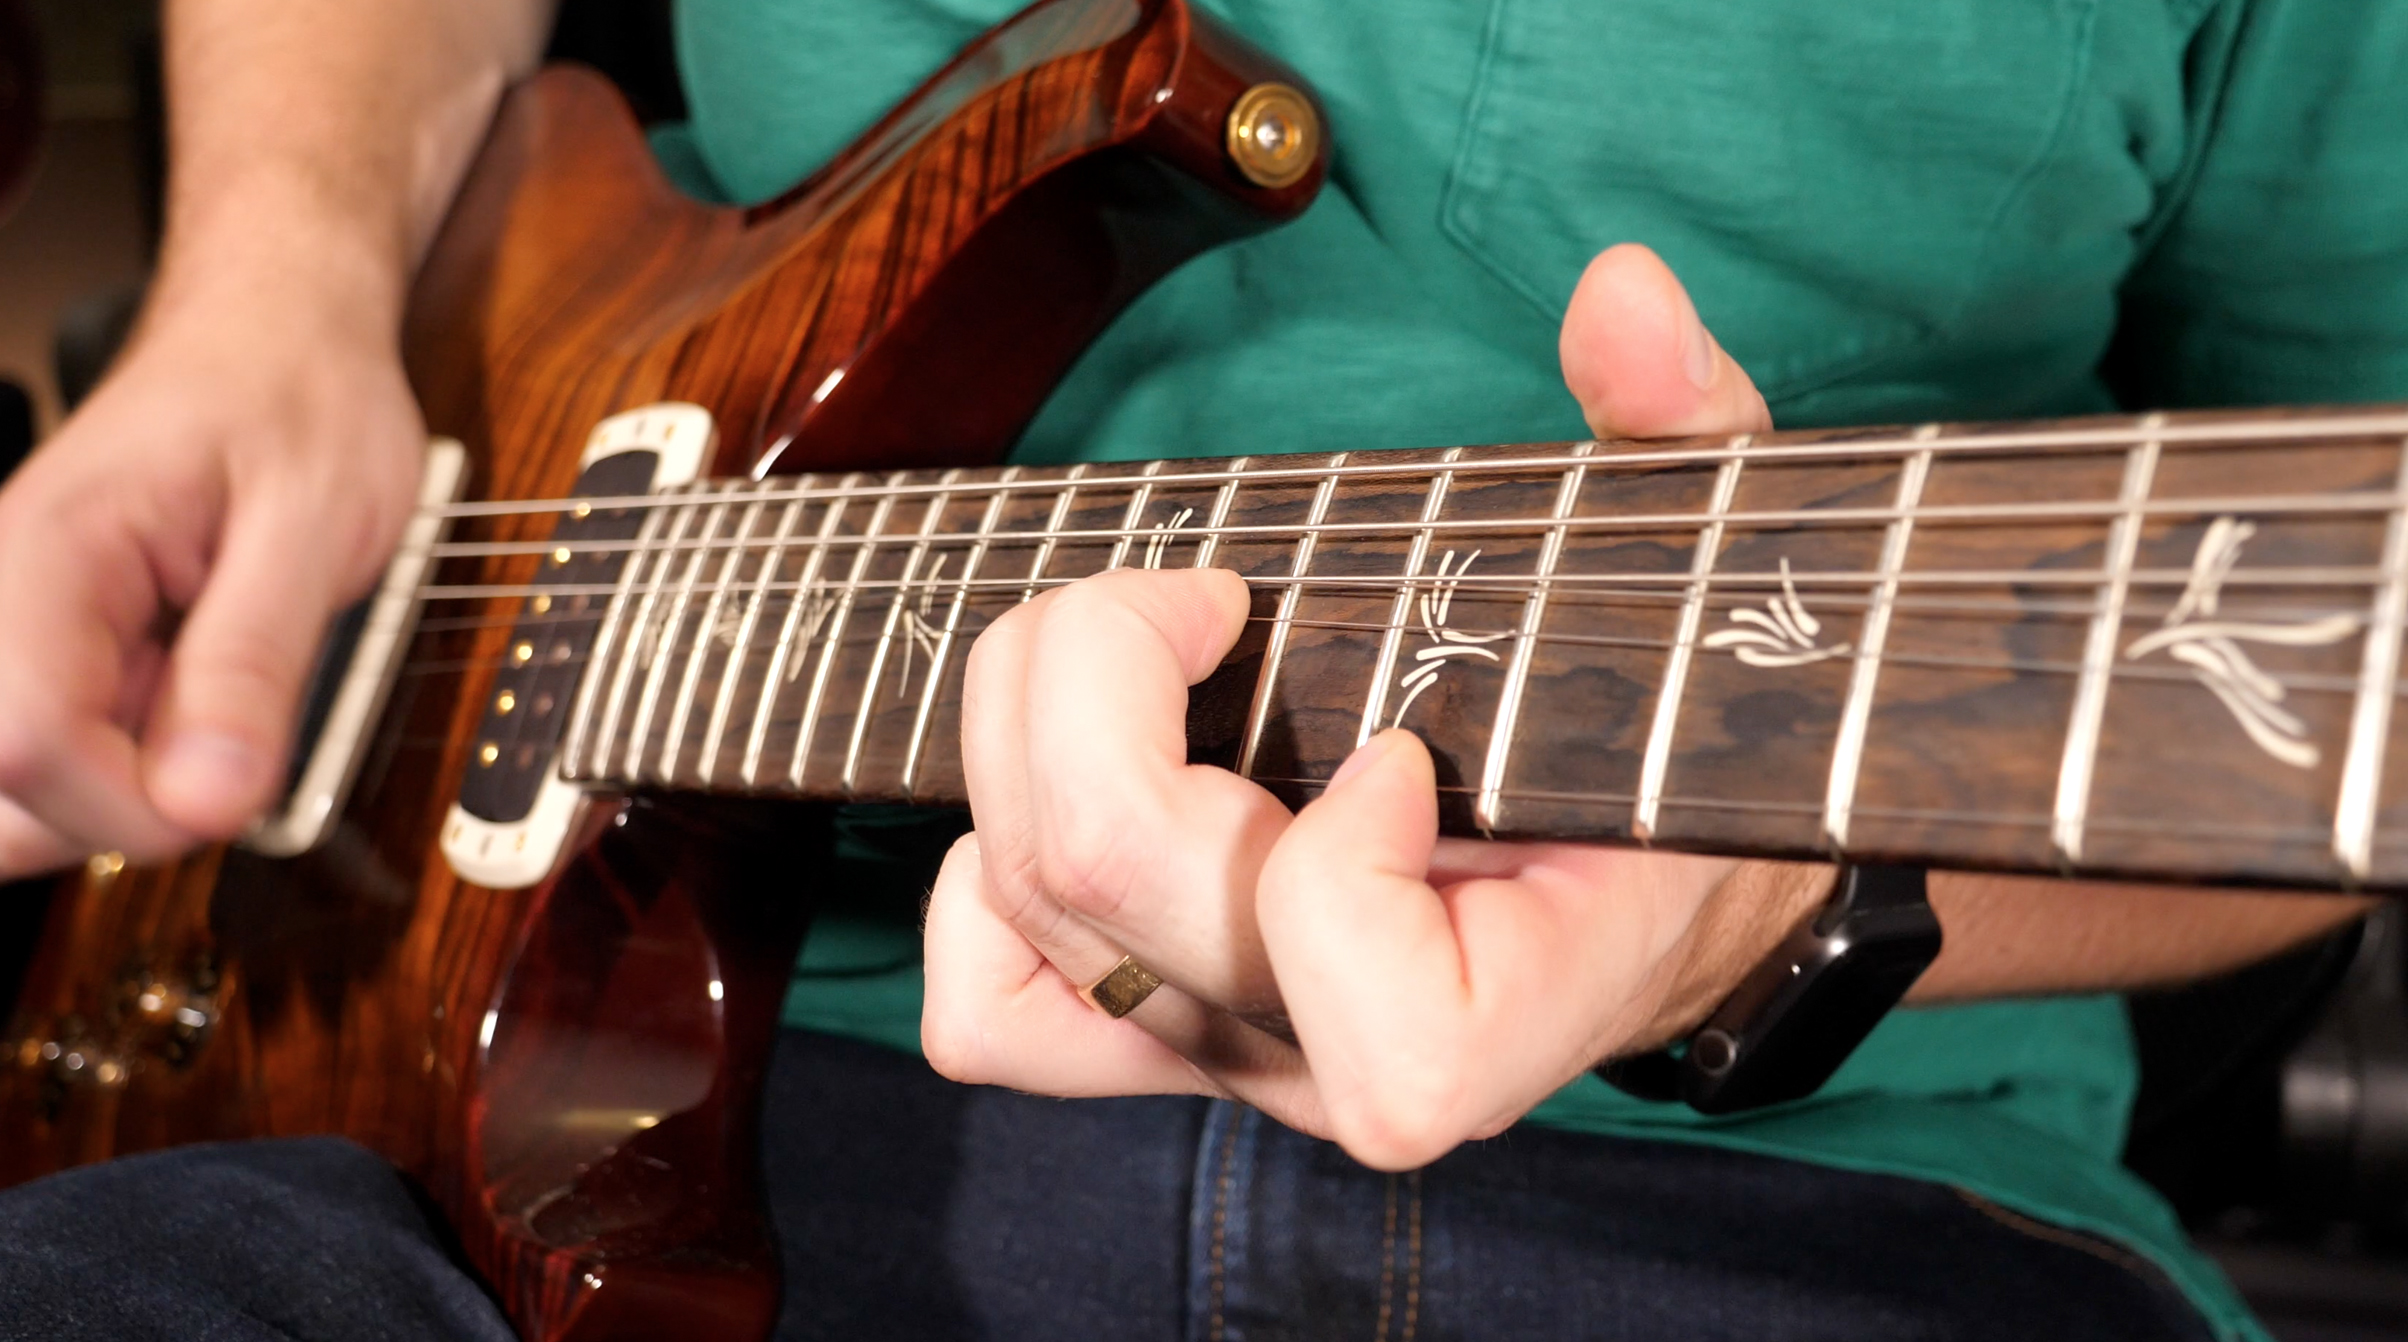 HARMONIC MINOR SCALE - Harmonic minor is an essential scale that is used to outline minor chords in your solos when you want to bring a unique and ominous sound to your guitar playing. One of the three big scales in modern music, alongside major and melodic minor, harmonic minor is heard in jazz, fusion, metal, and other musical genres. Though you may use it less than Major Scale modes like Dorian or Aeolian, the Harmonic Minor Scale contains a cool color that spices up your minor key guitar solos.